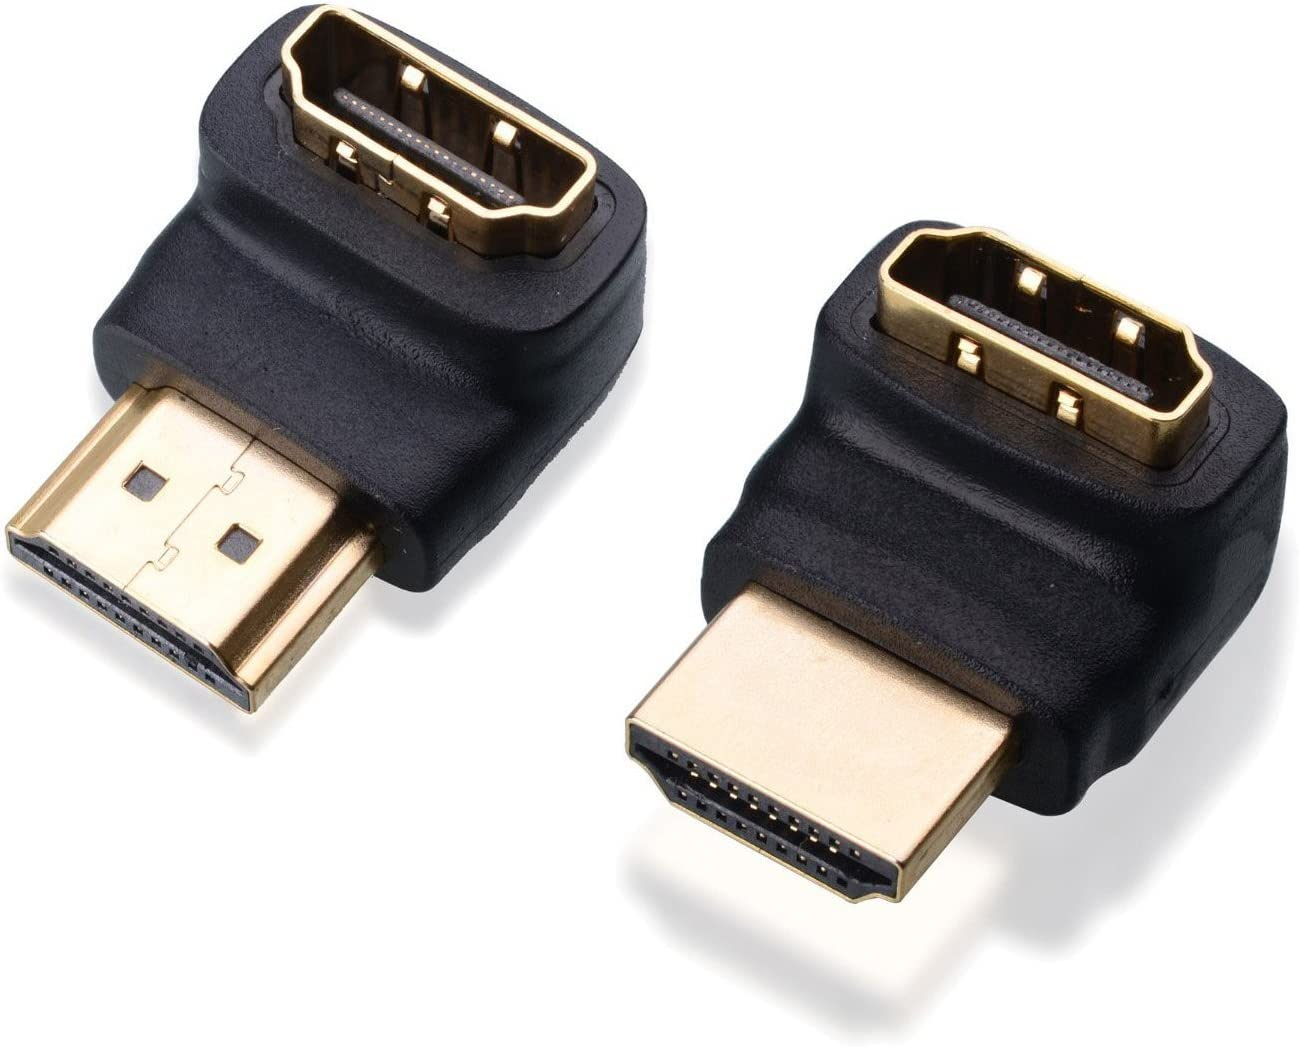 RuiLing Gold Plated 90 Degree and 270 Degree HDMI Male to Female Adapter